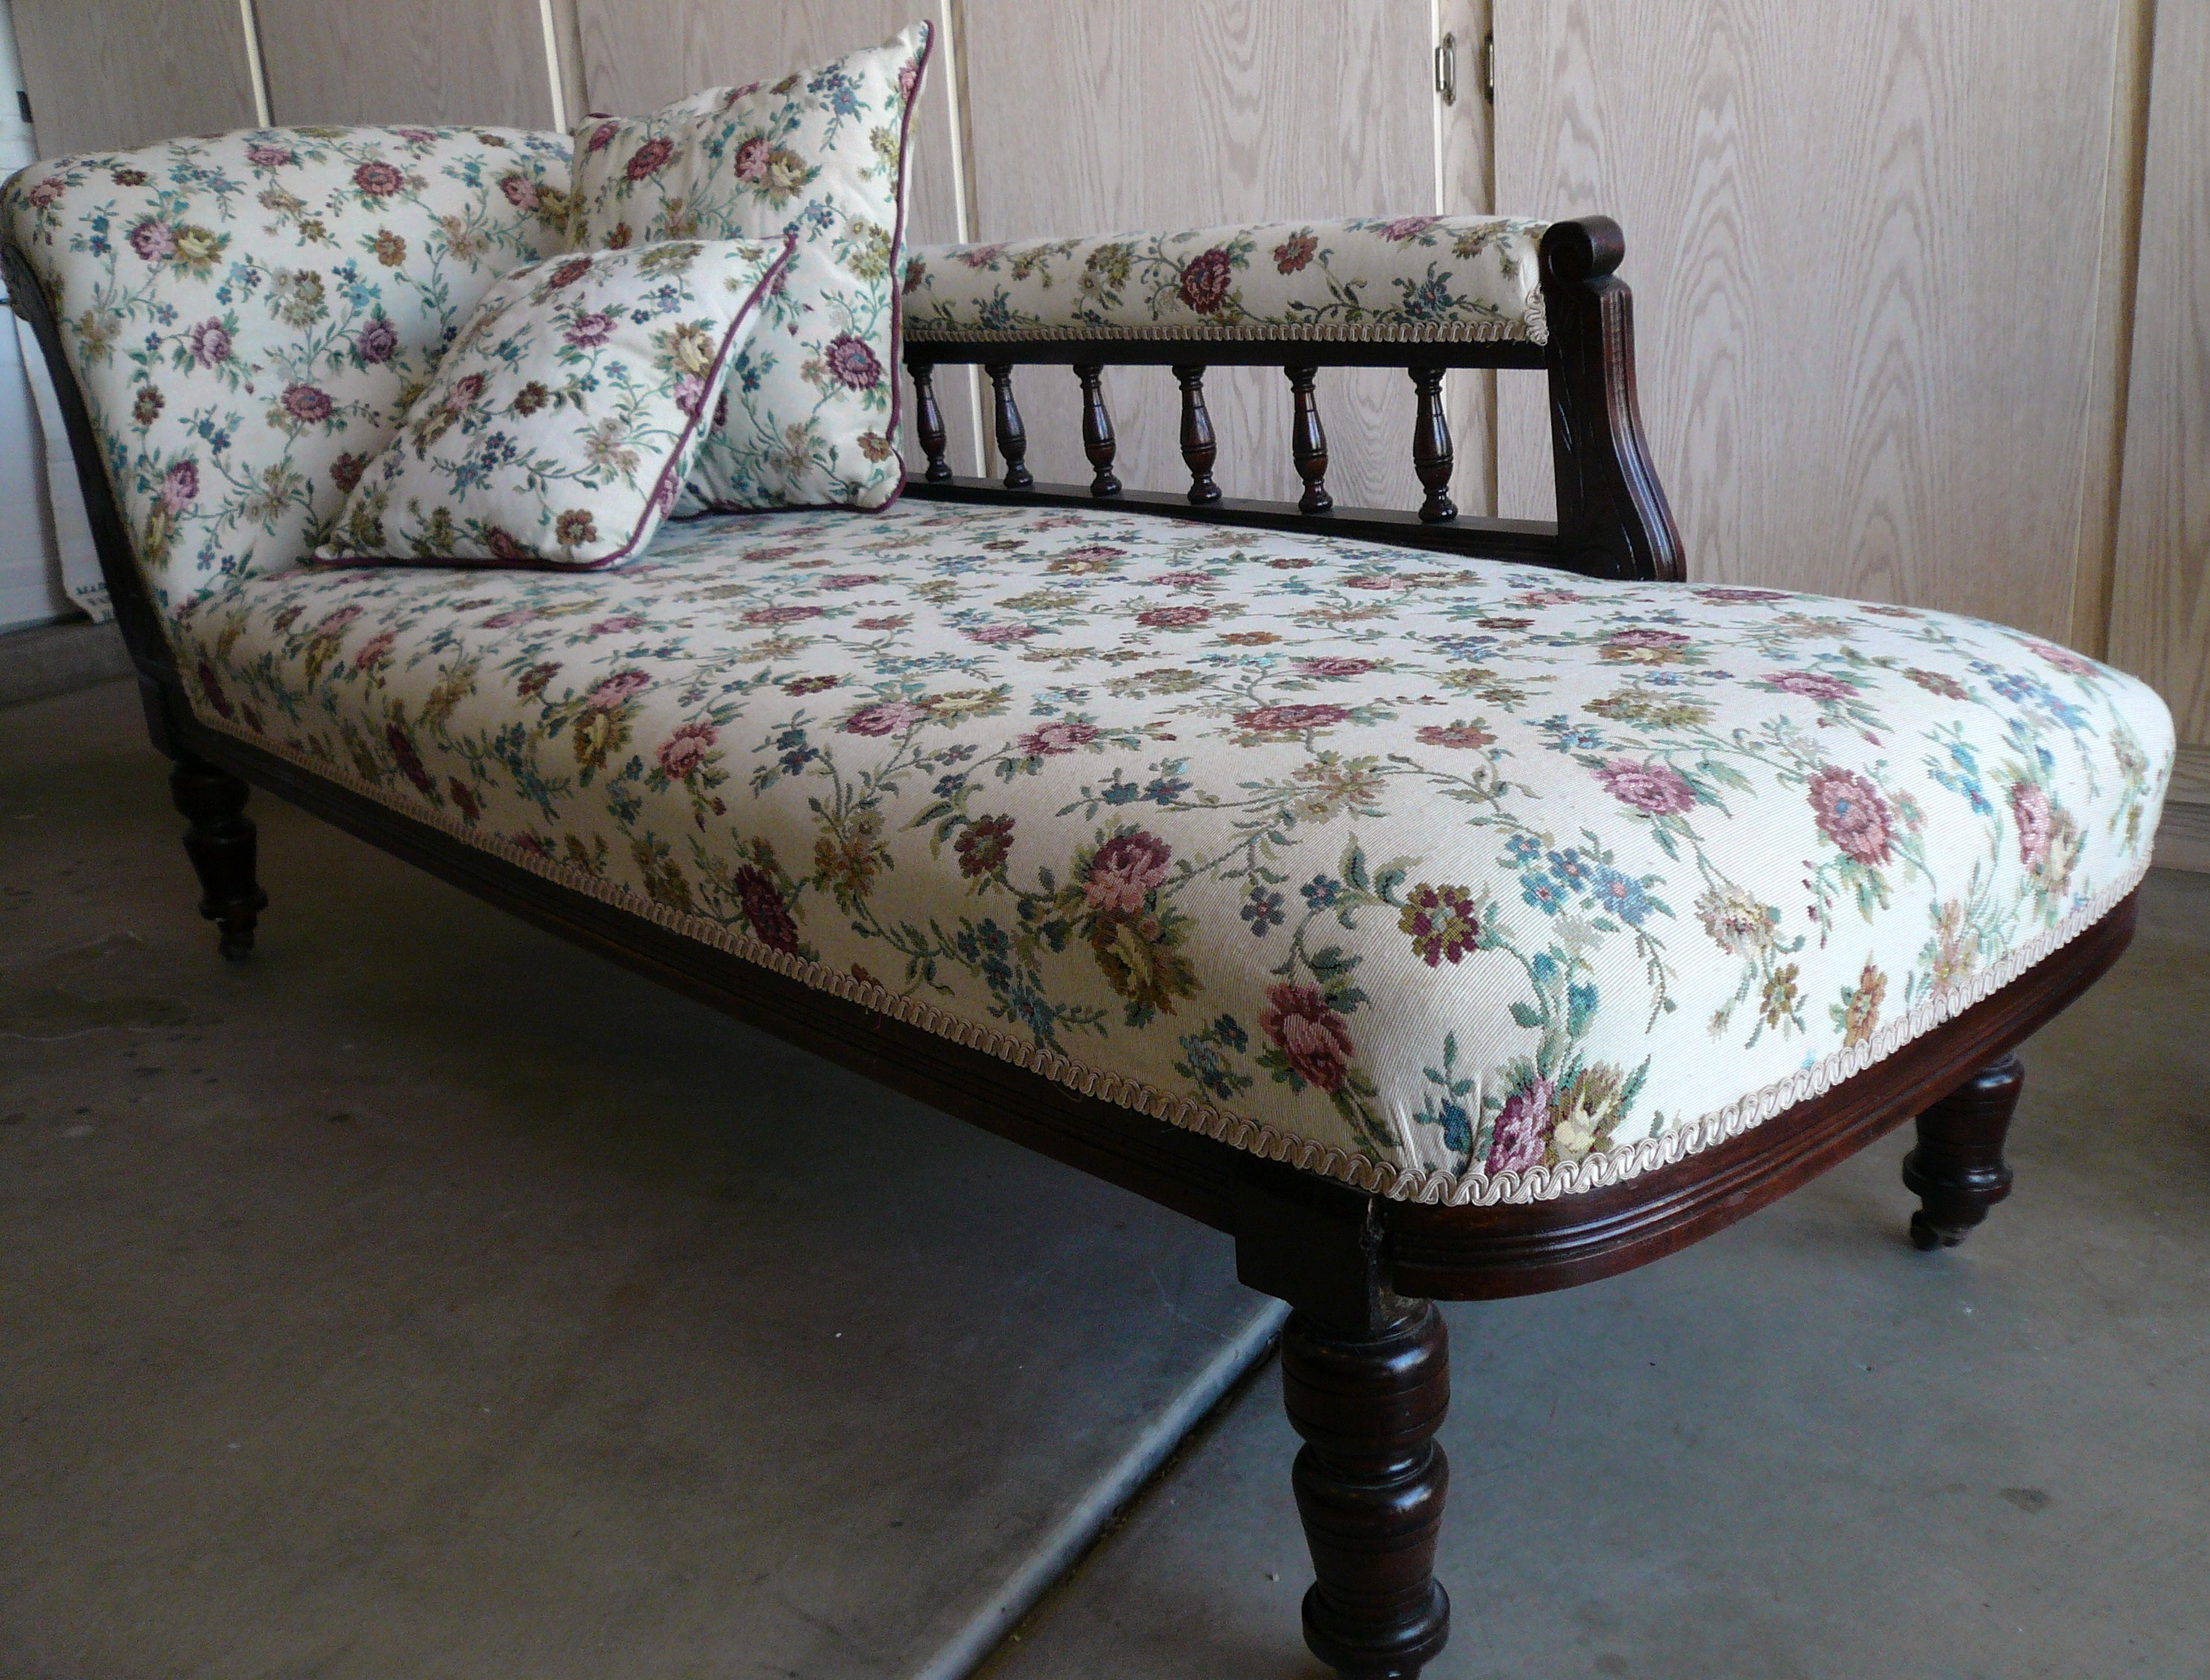 Chaise lounge 650 for sale classifieds for Antique chaise lounges for sale